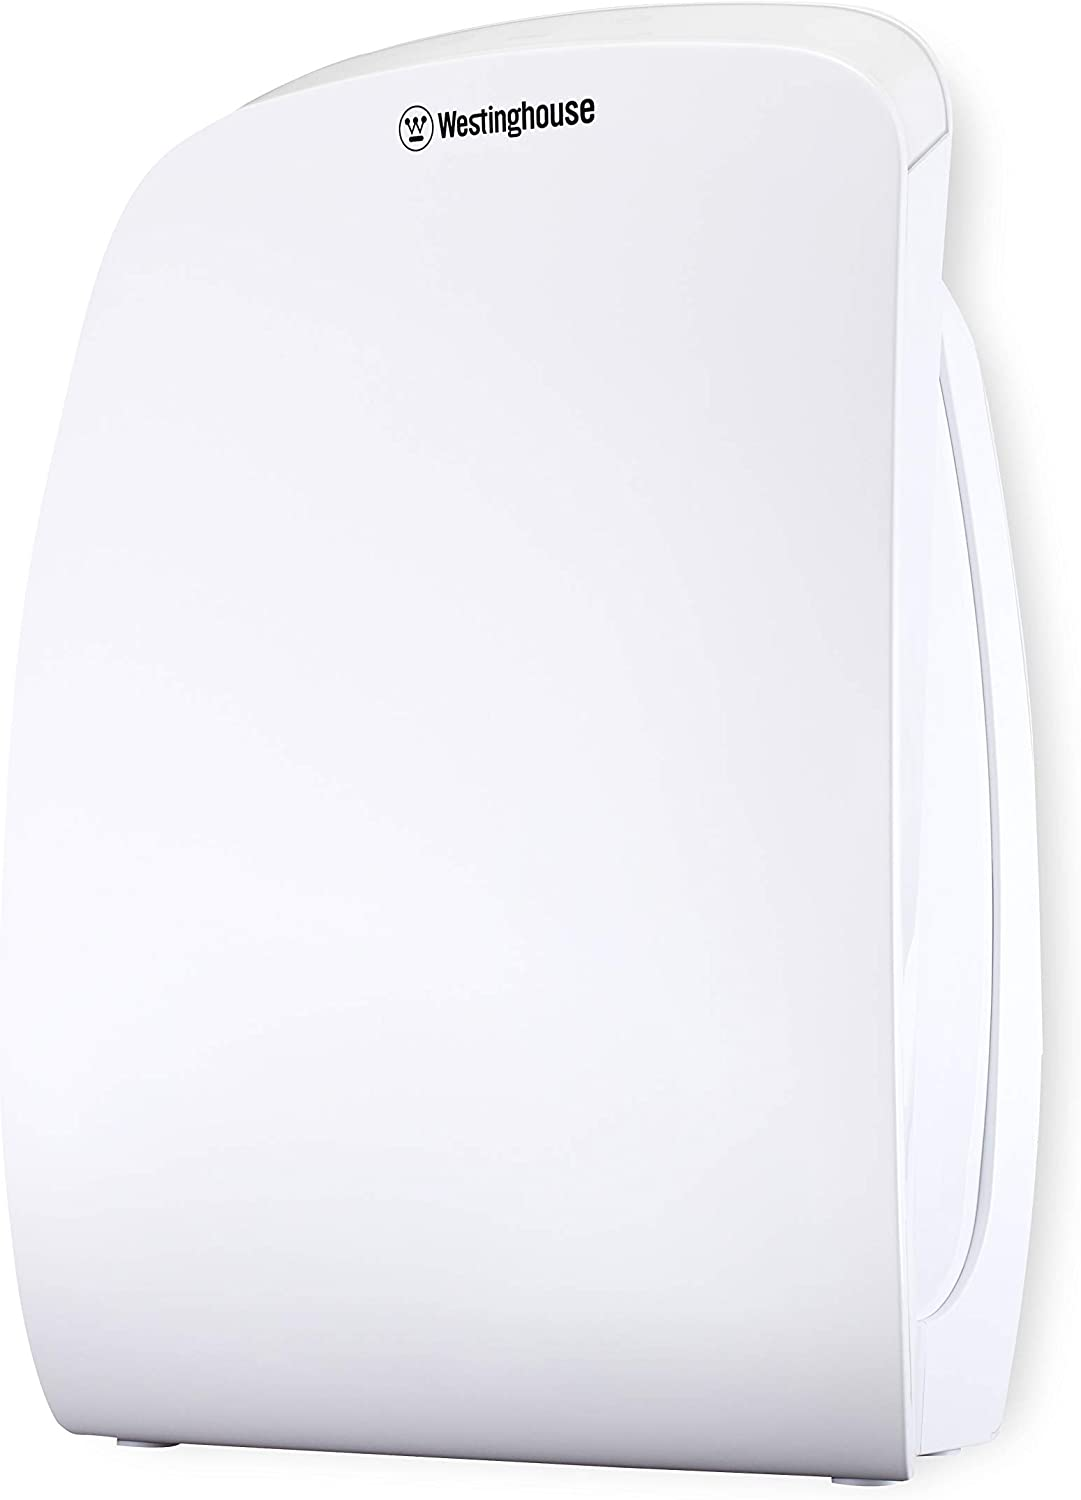 Westinghouse 1701 Air Purifier with True HEPA Filter & NCCO Technology - Kills, Sanitizes, Removes Bacteria, Viruses, VOCs, Allergens, Dust, Smoke - Medium to Large Rooms – Bedroom, Kitchen, Office